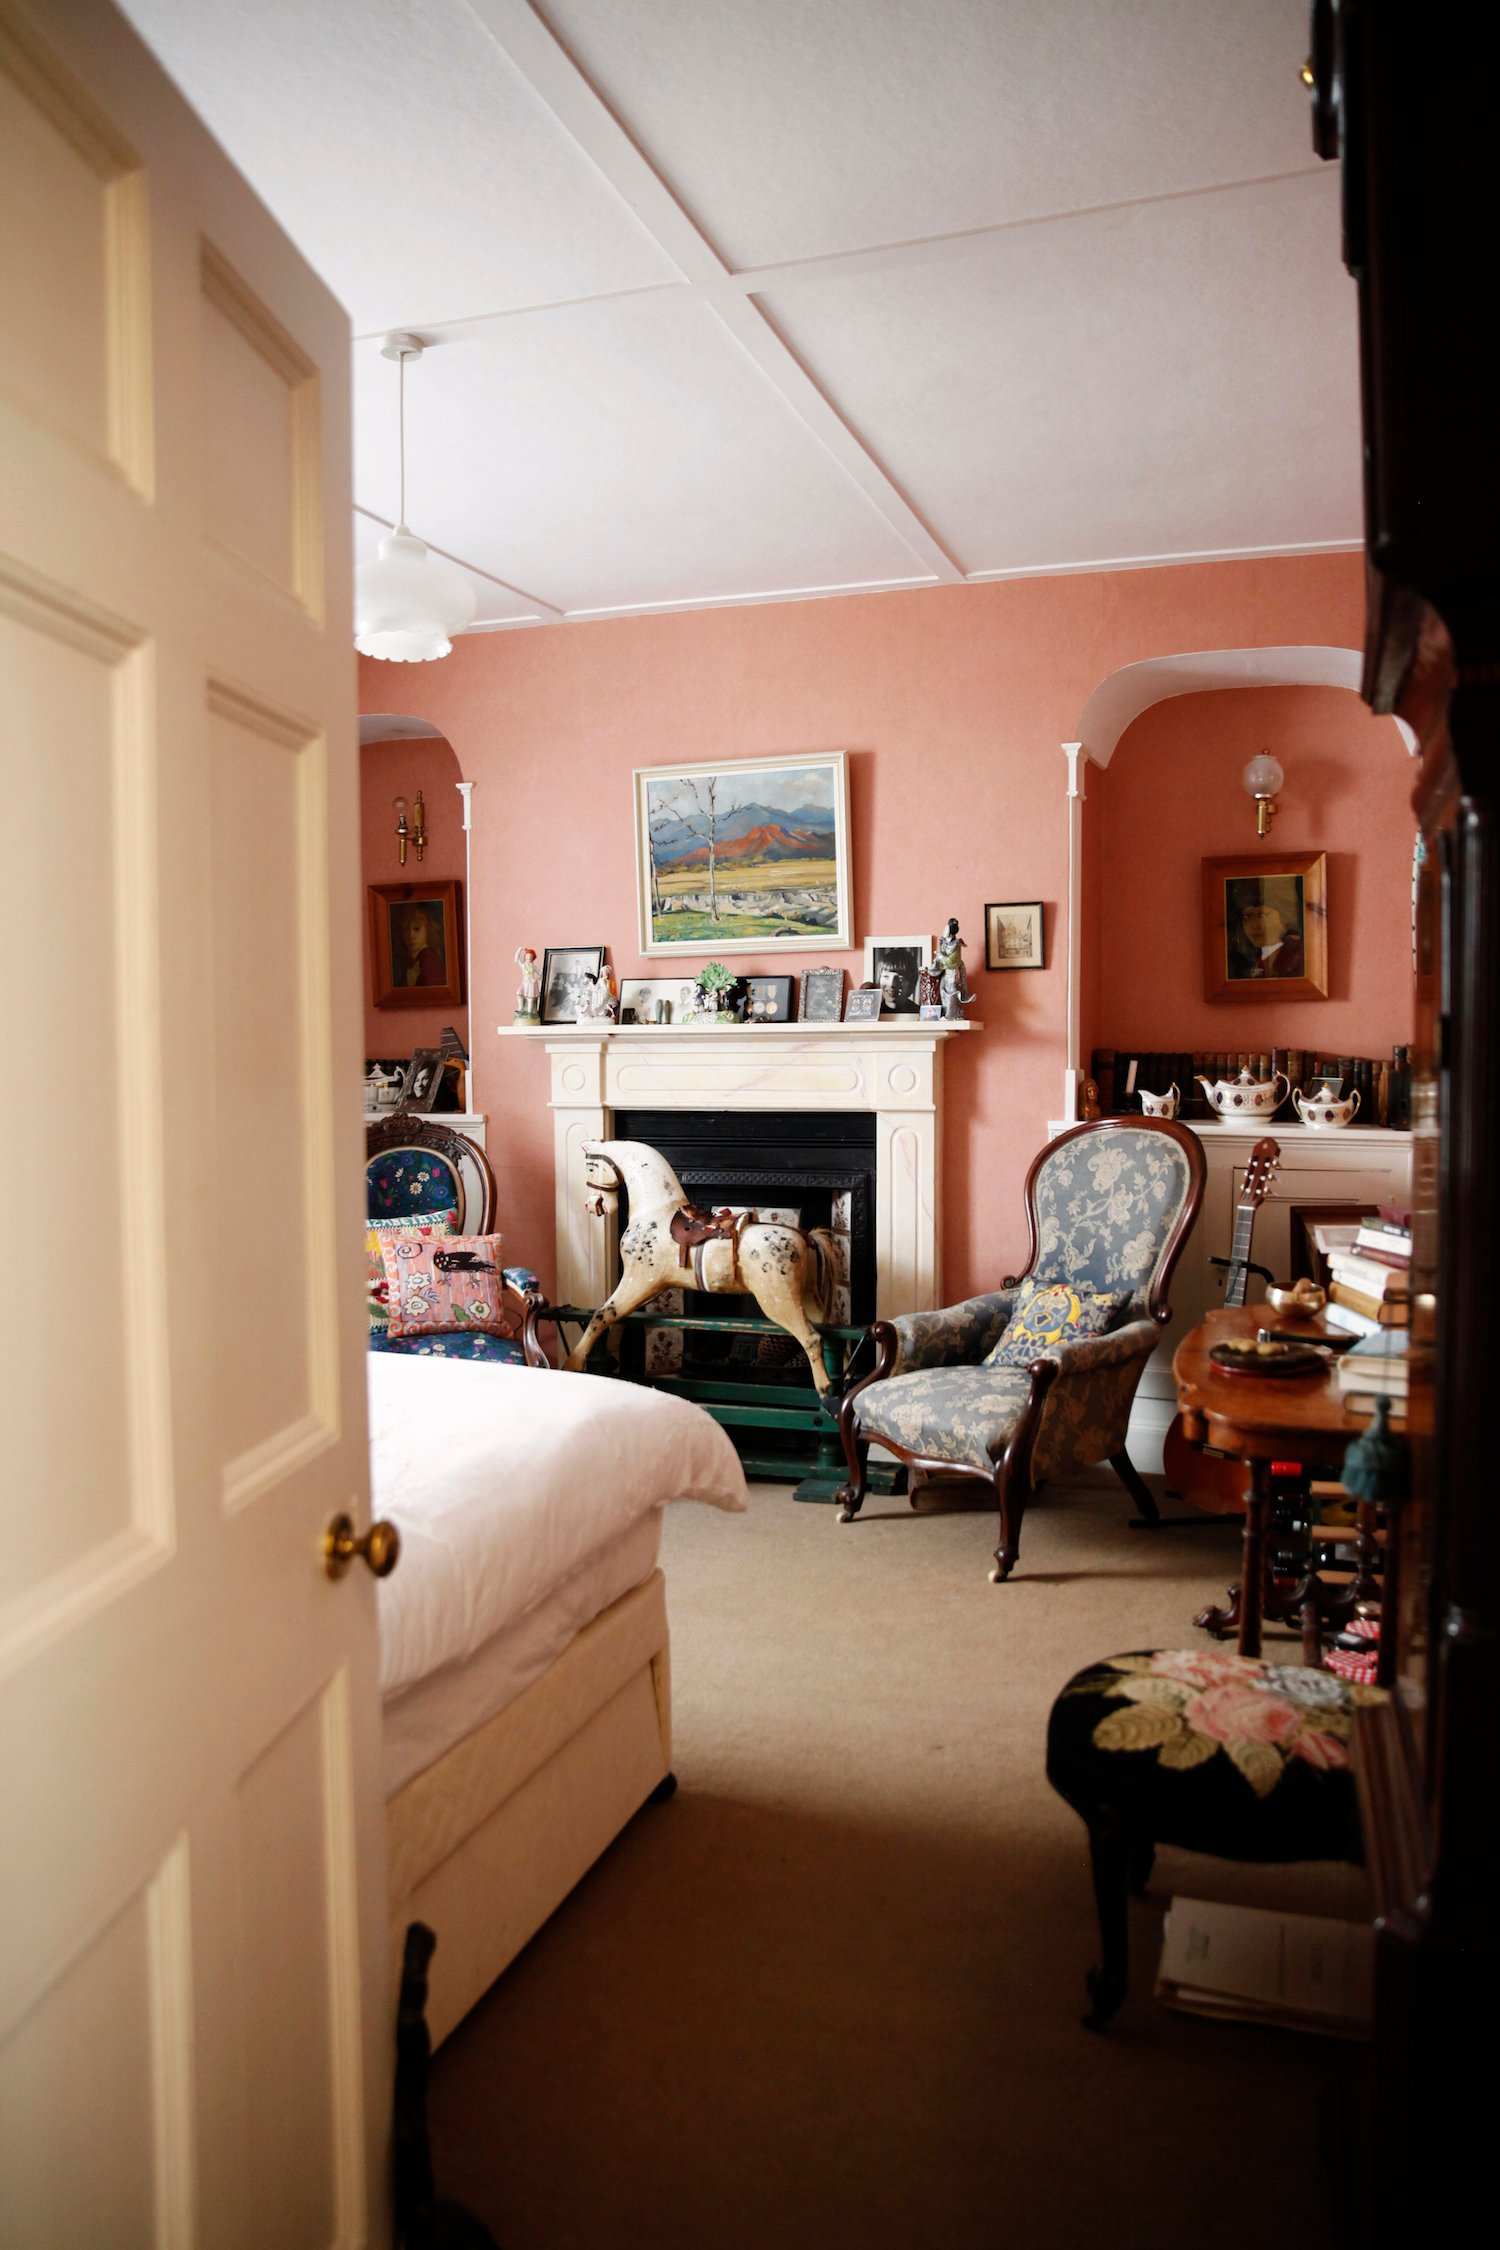 House tour in Cornwall, England